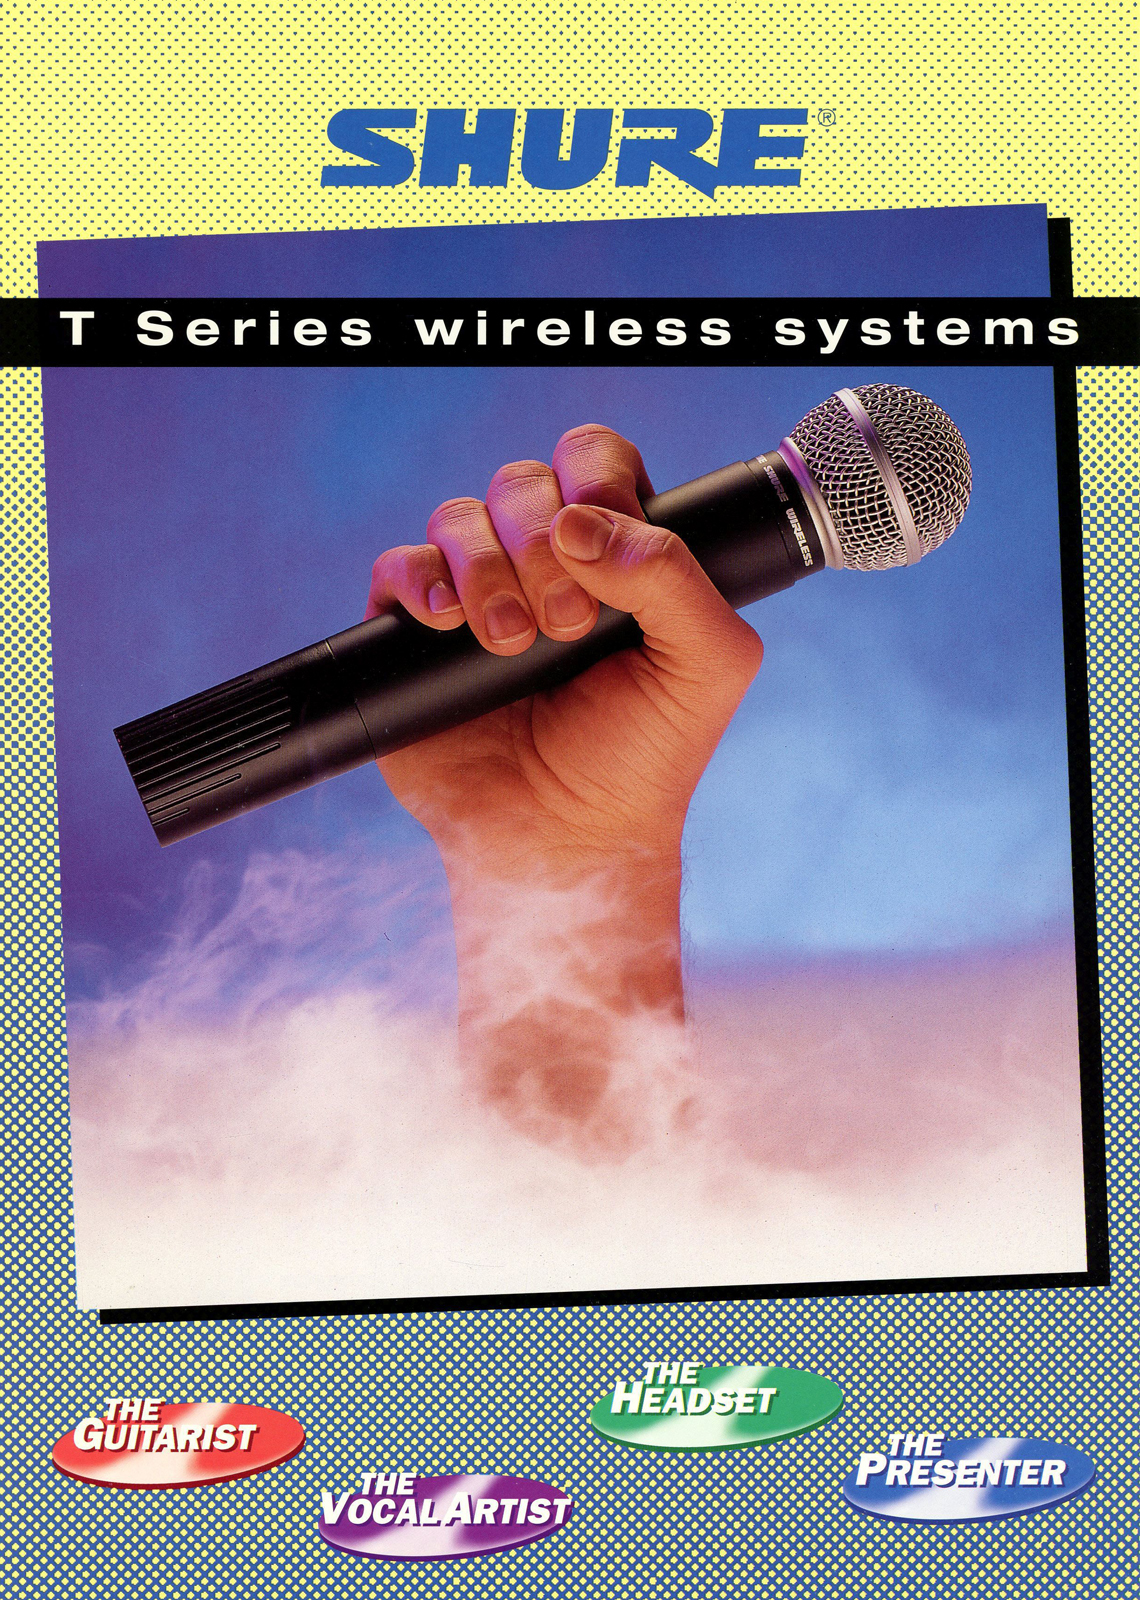 Shure T Series Wireless System - Classic Advertisement